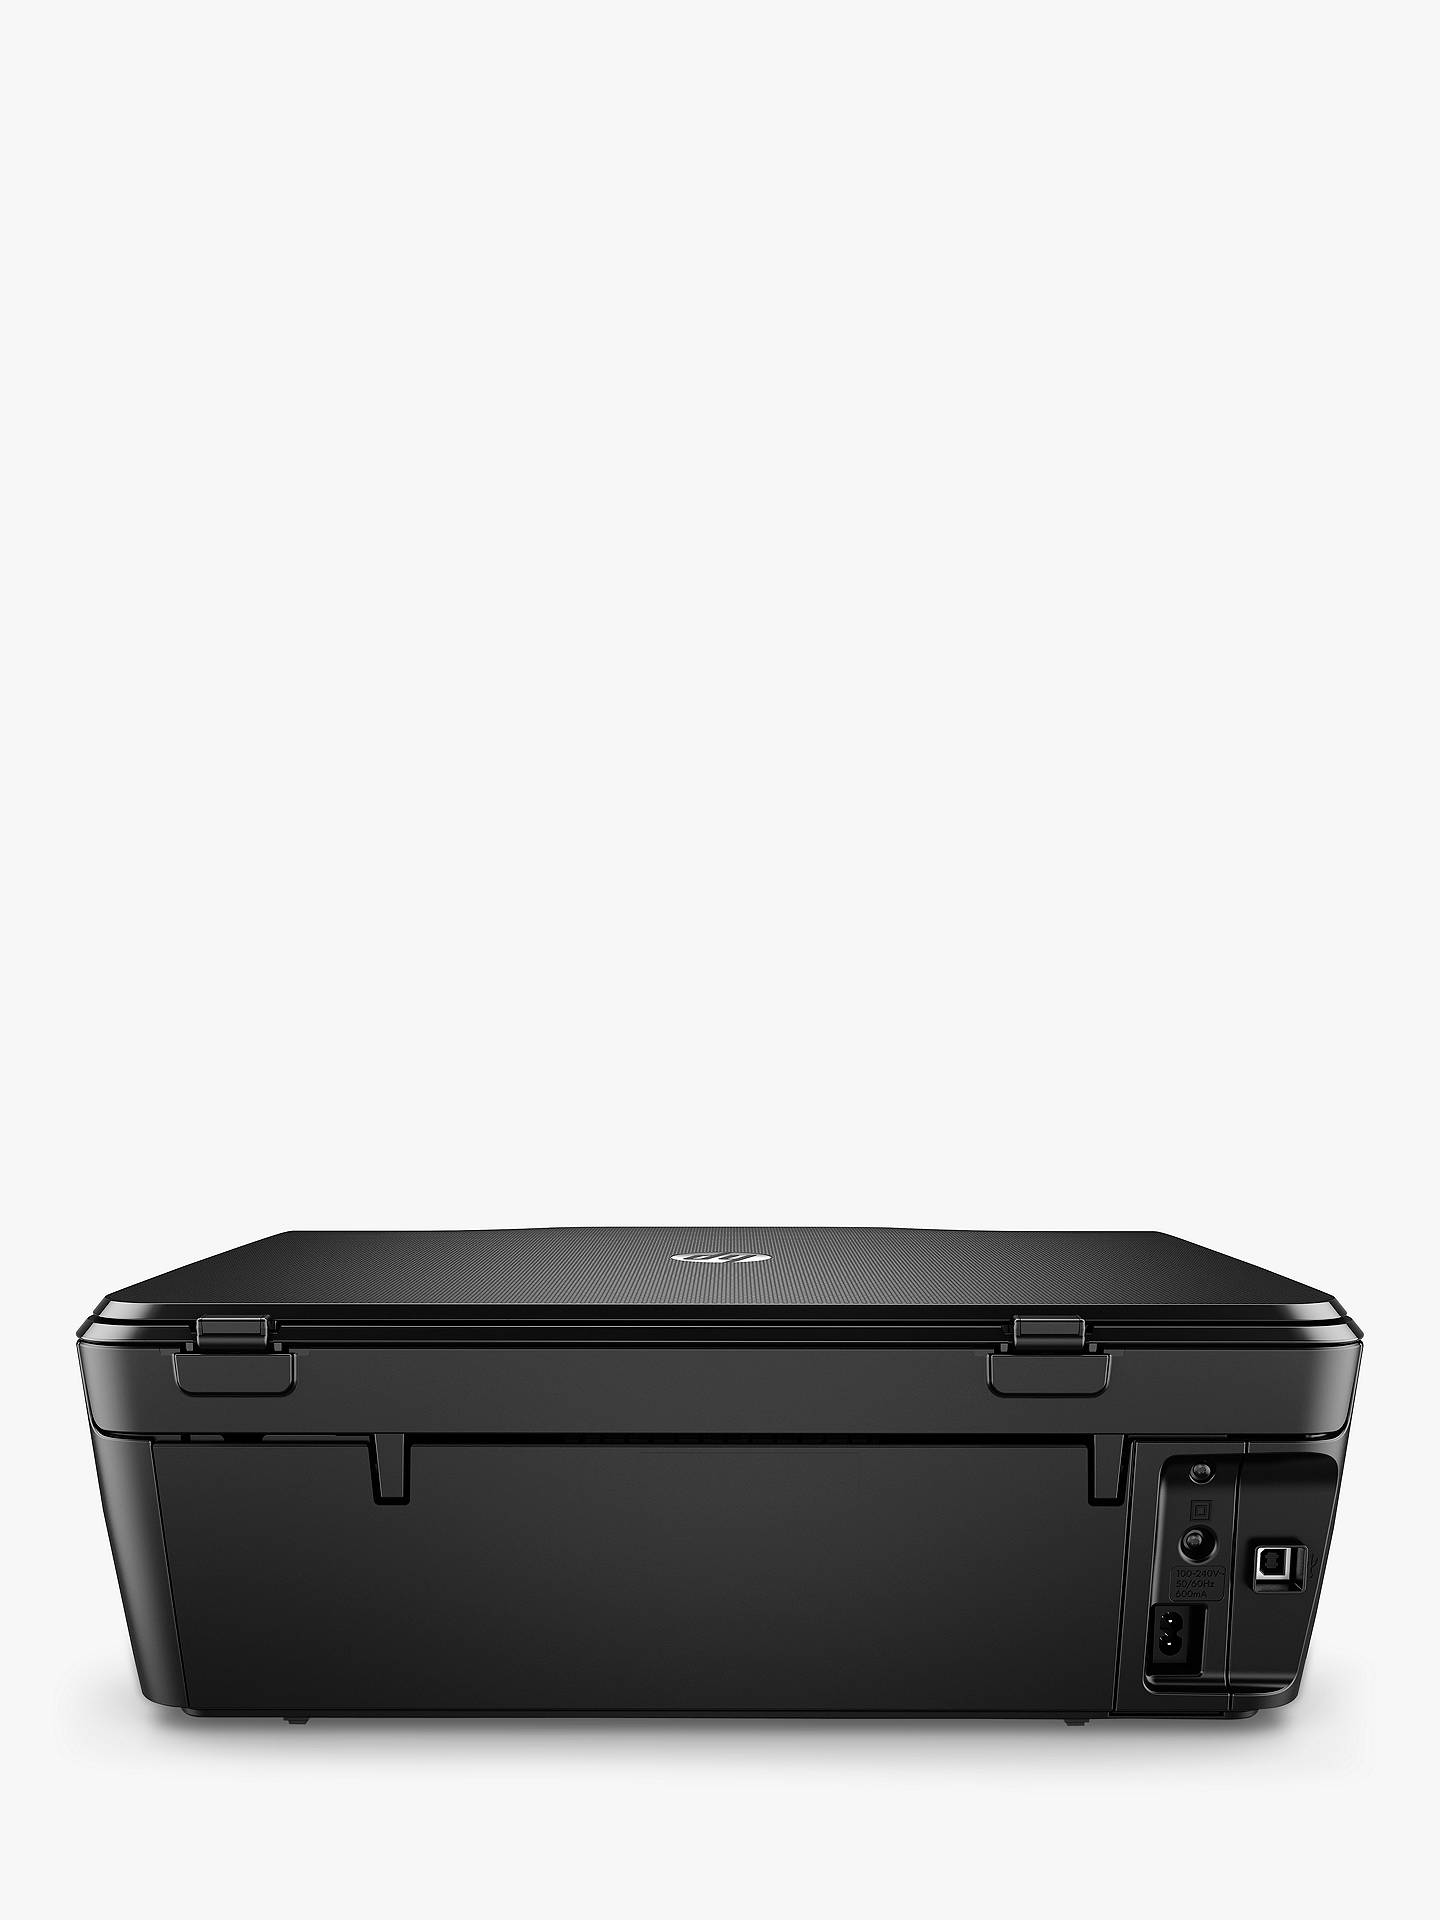 Buy HP ENVY Photo 6230 All-in-One Wireless Printer with Touch Screen, HP Instant Ink Compatible with 4 Months Trial Online at johnlewis.com